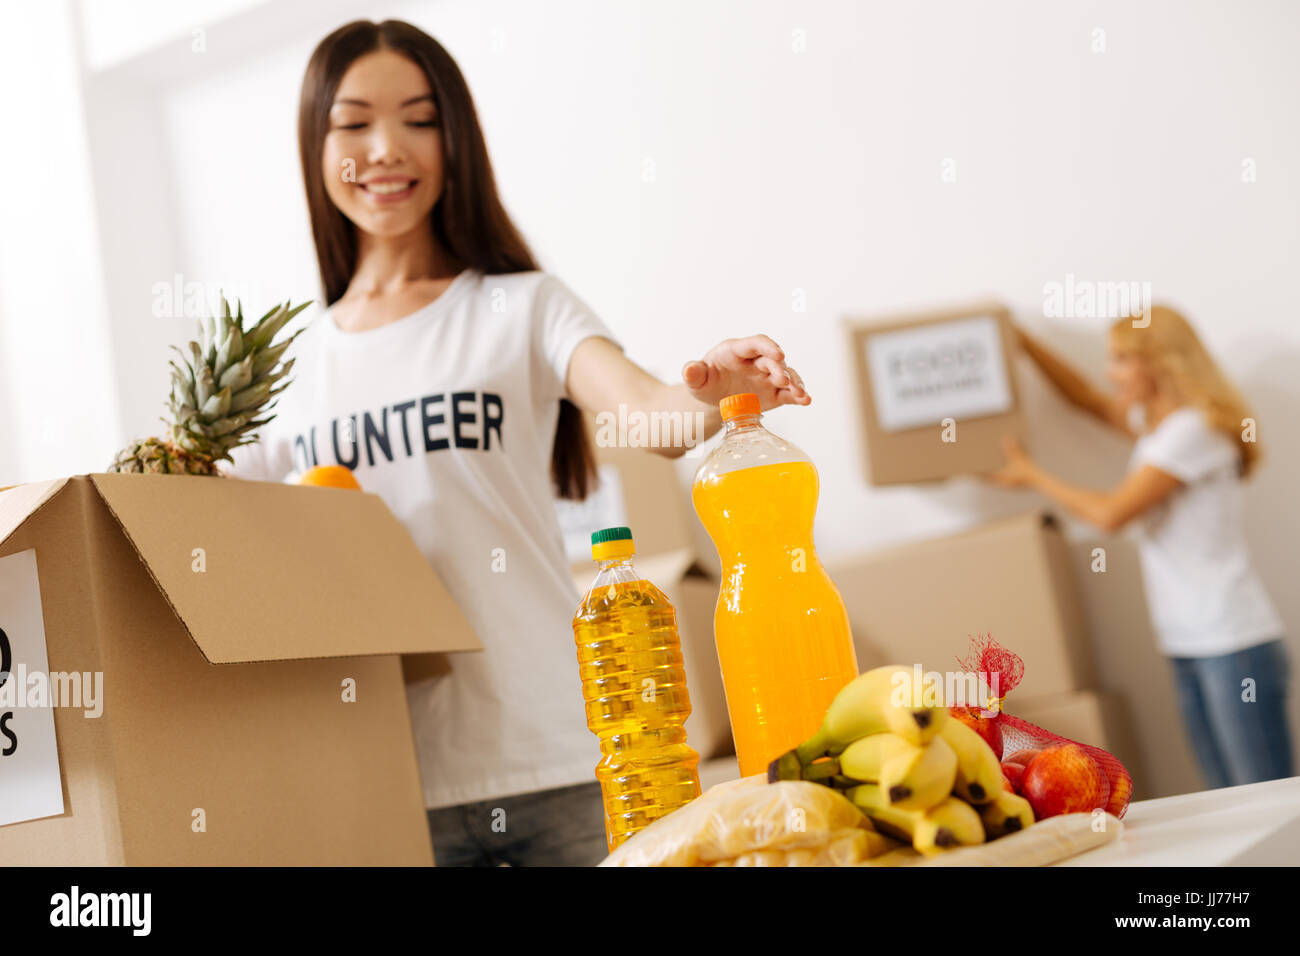 Dedicated altruistic woman canvassing the package - Stock Image